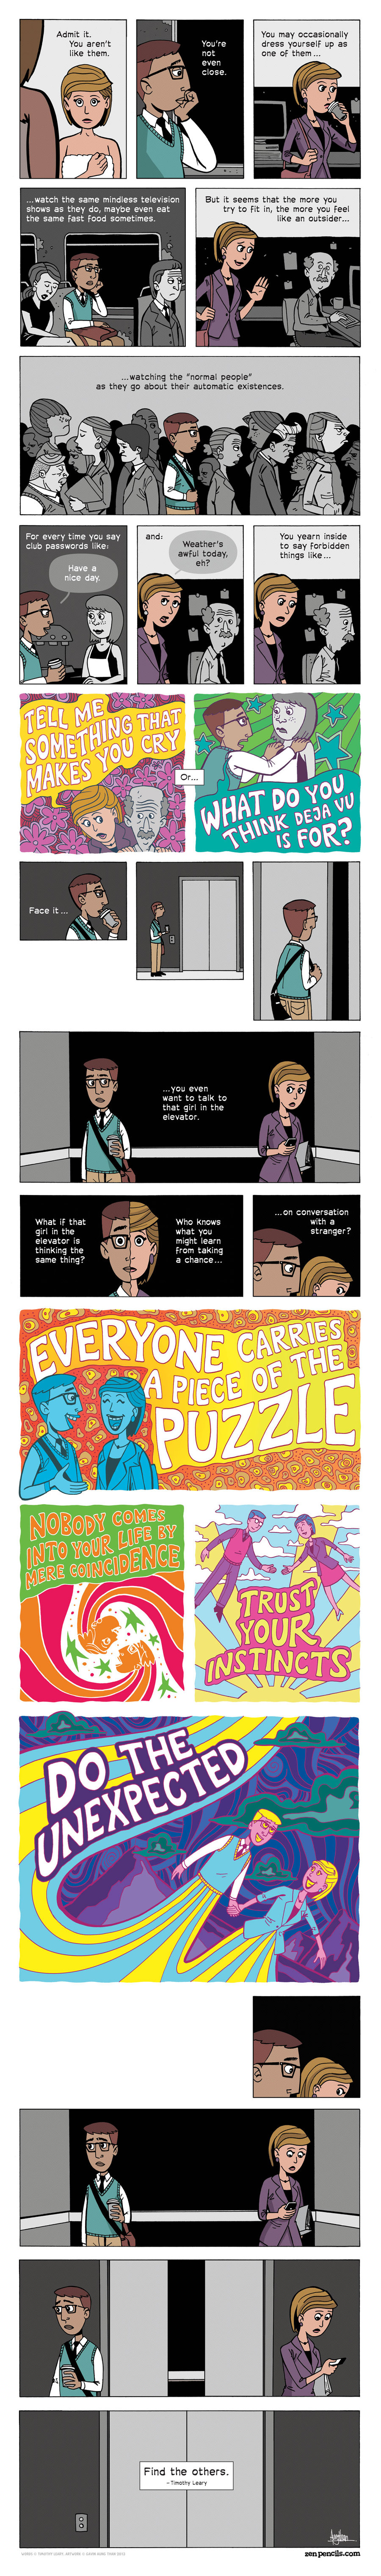 Zen Pencils for Feb 24, 2014 Comic Strip